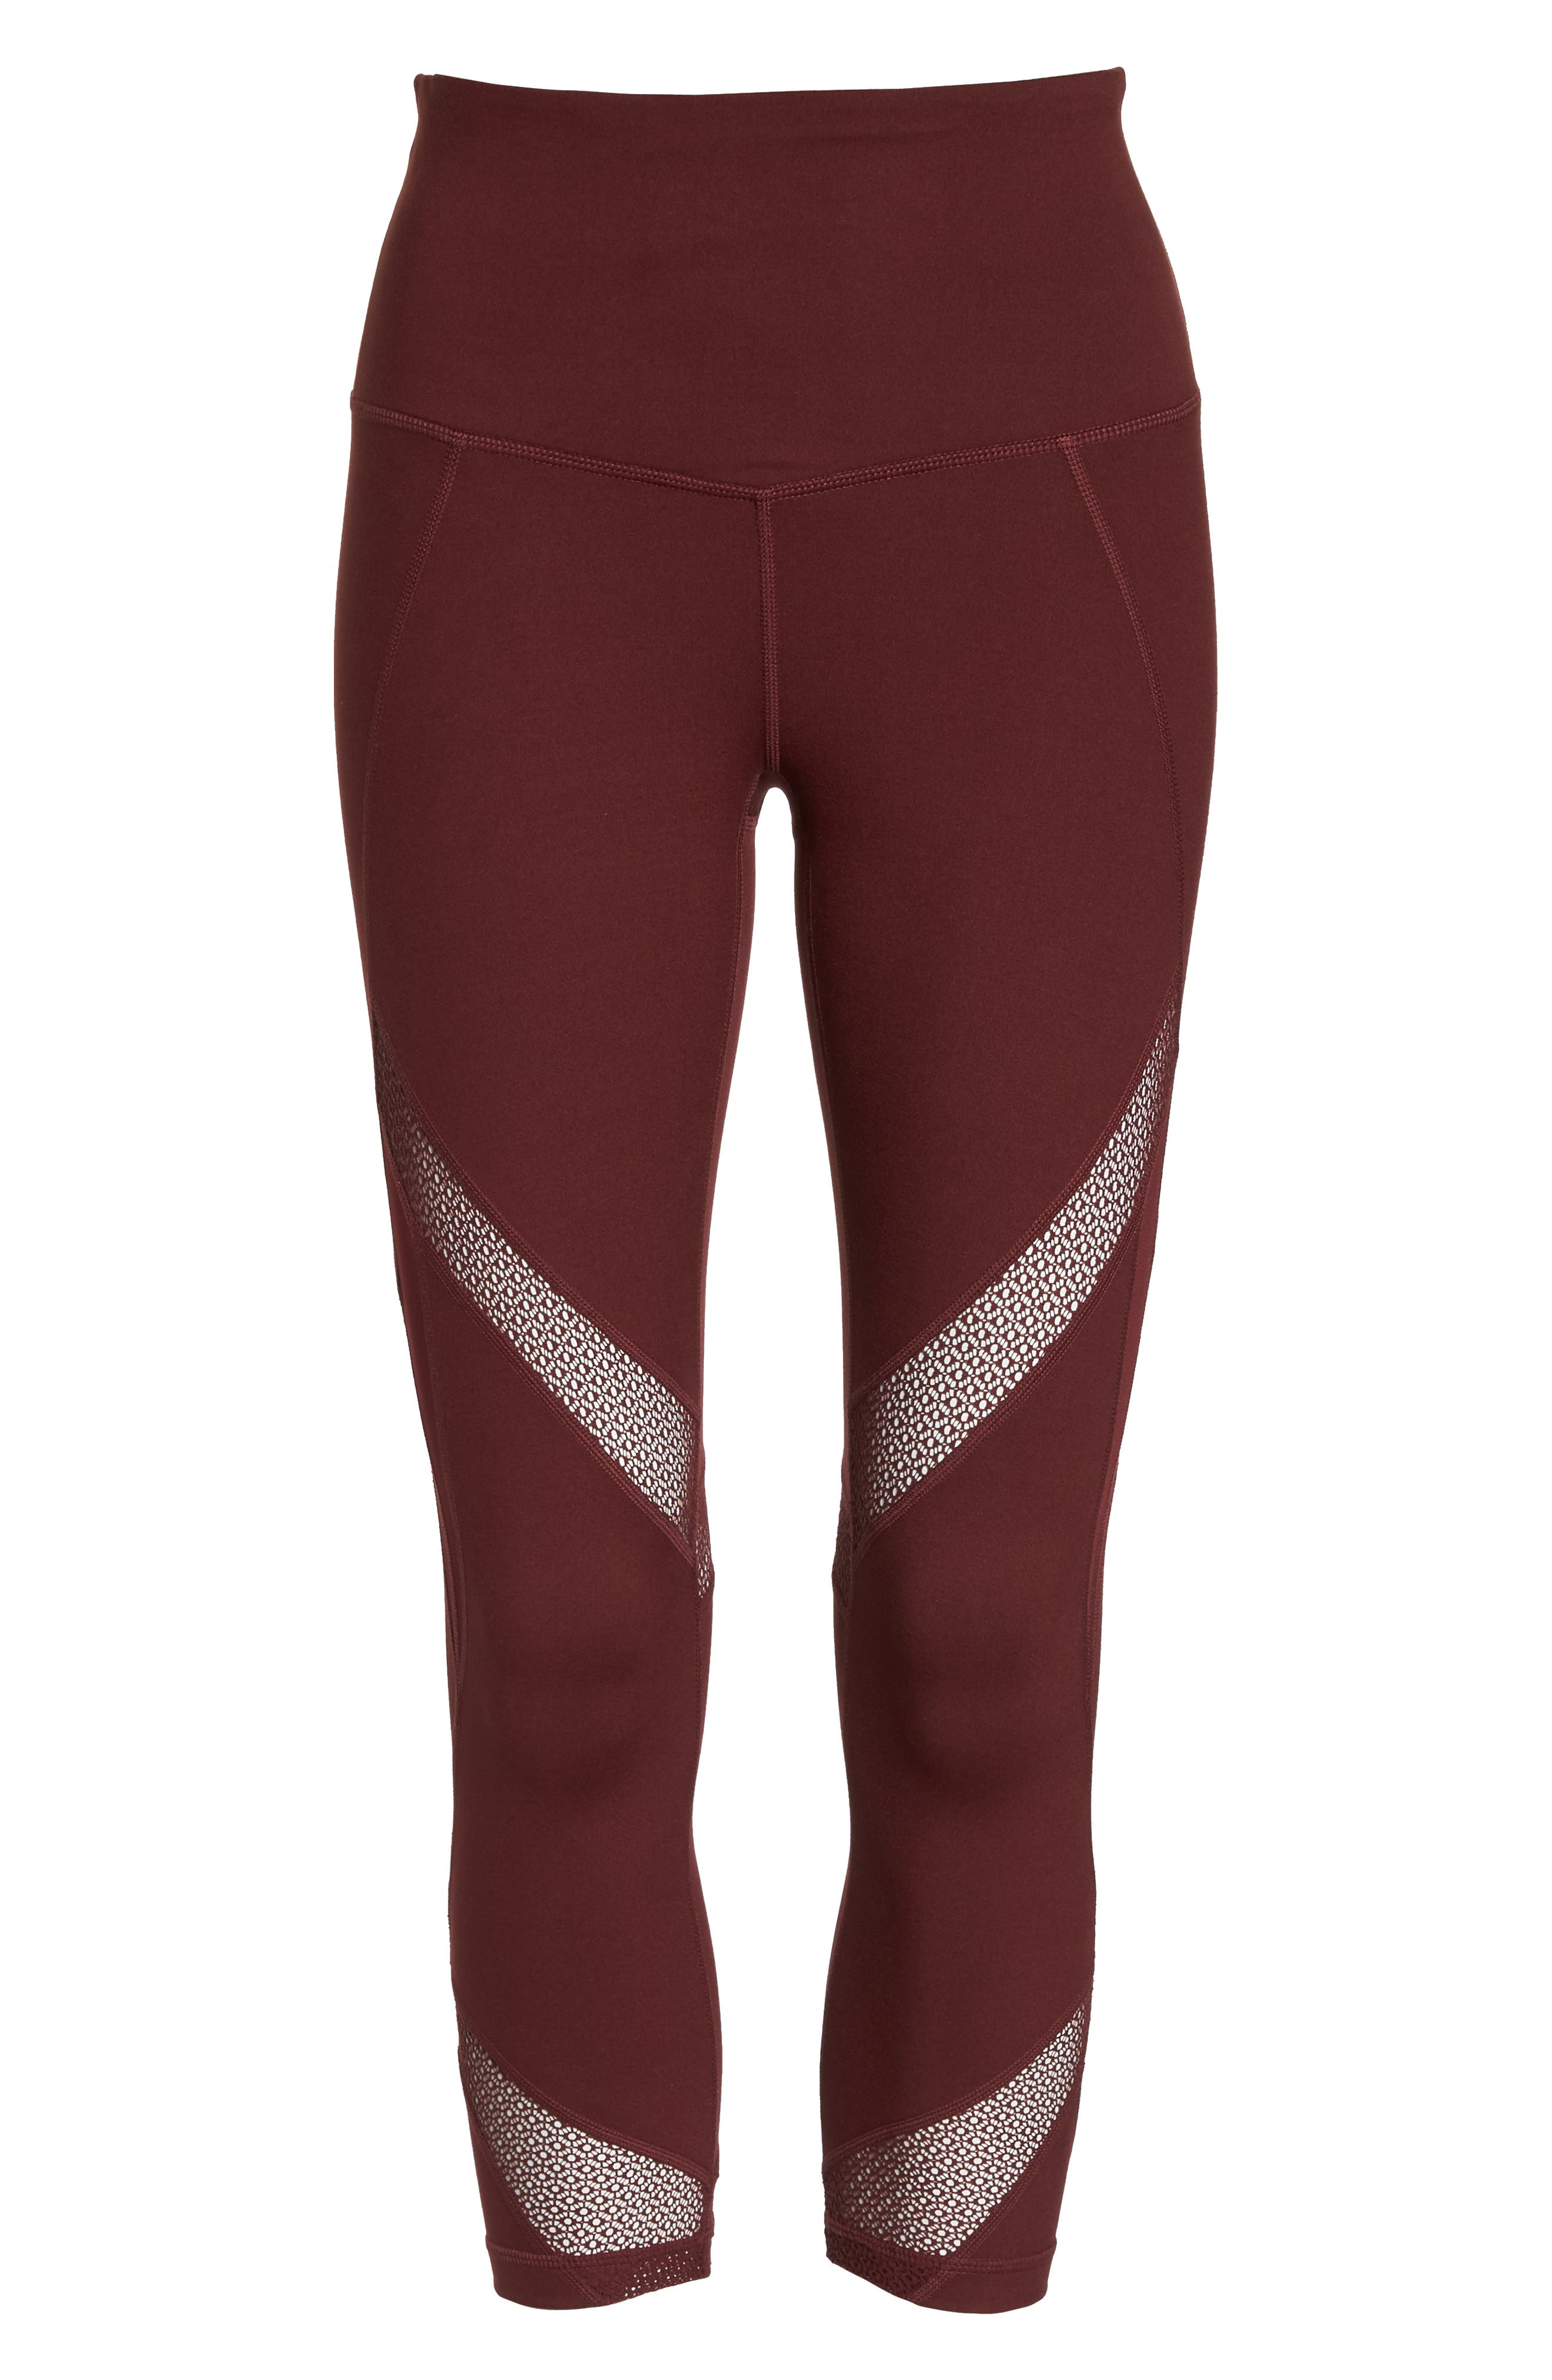 Moroccan High Waist Crop Leggings,                             Alternate thumbnail 7, color,                             RED TANNIN